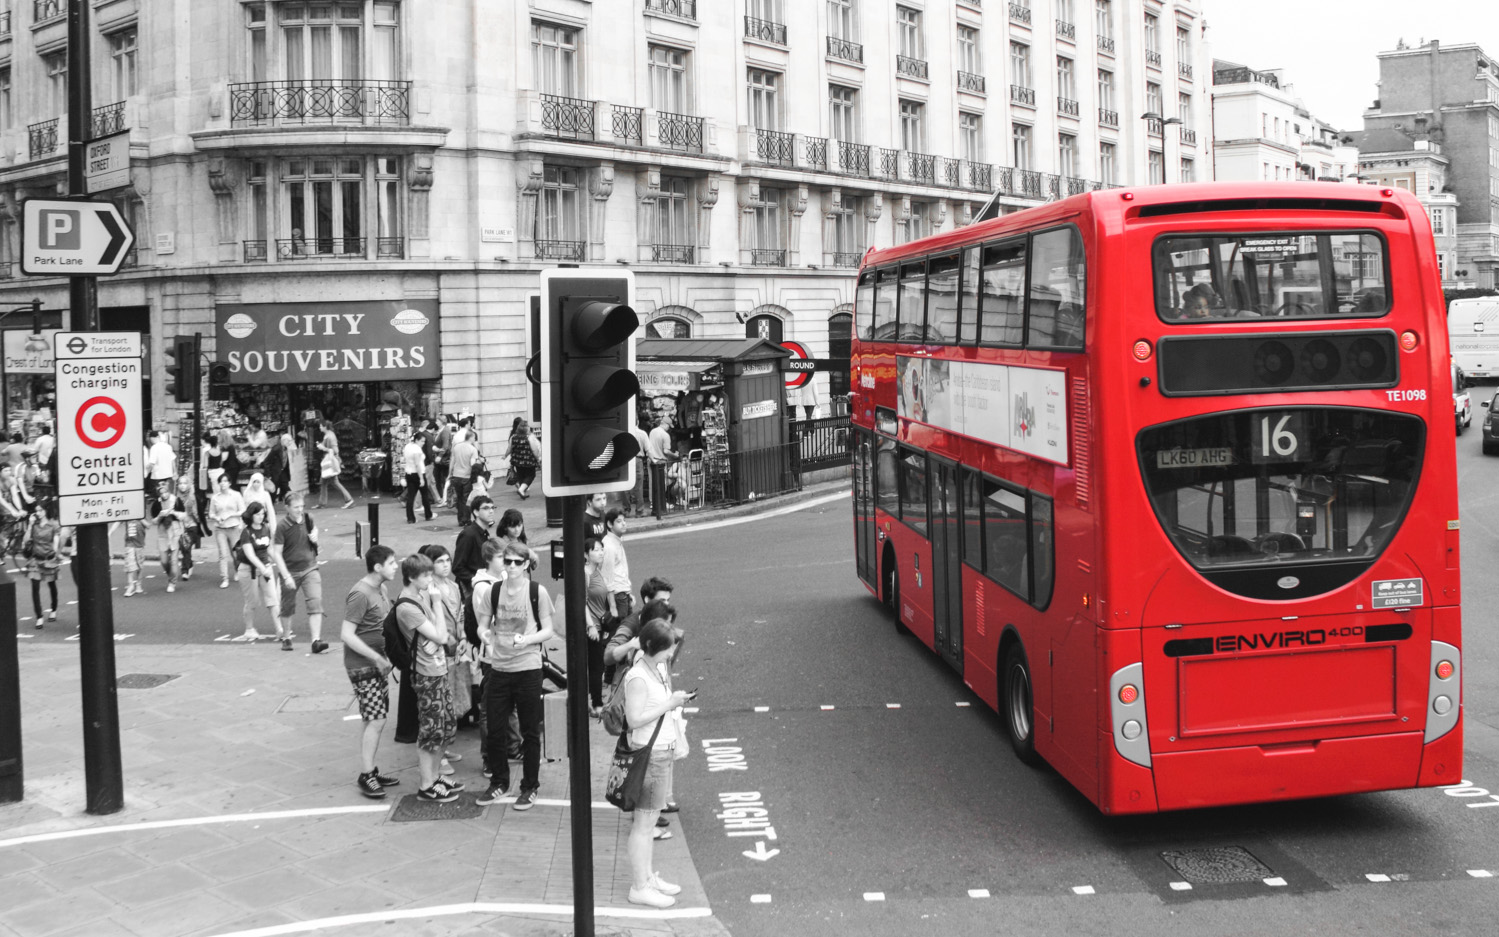 Christian-Schaffer-England-London-Bus.jpg